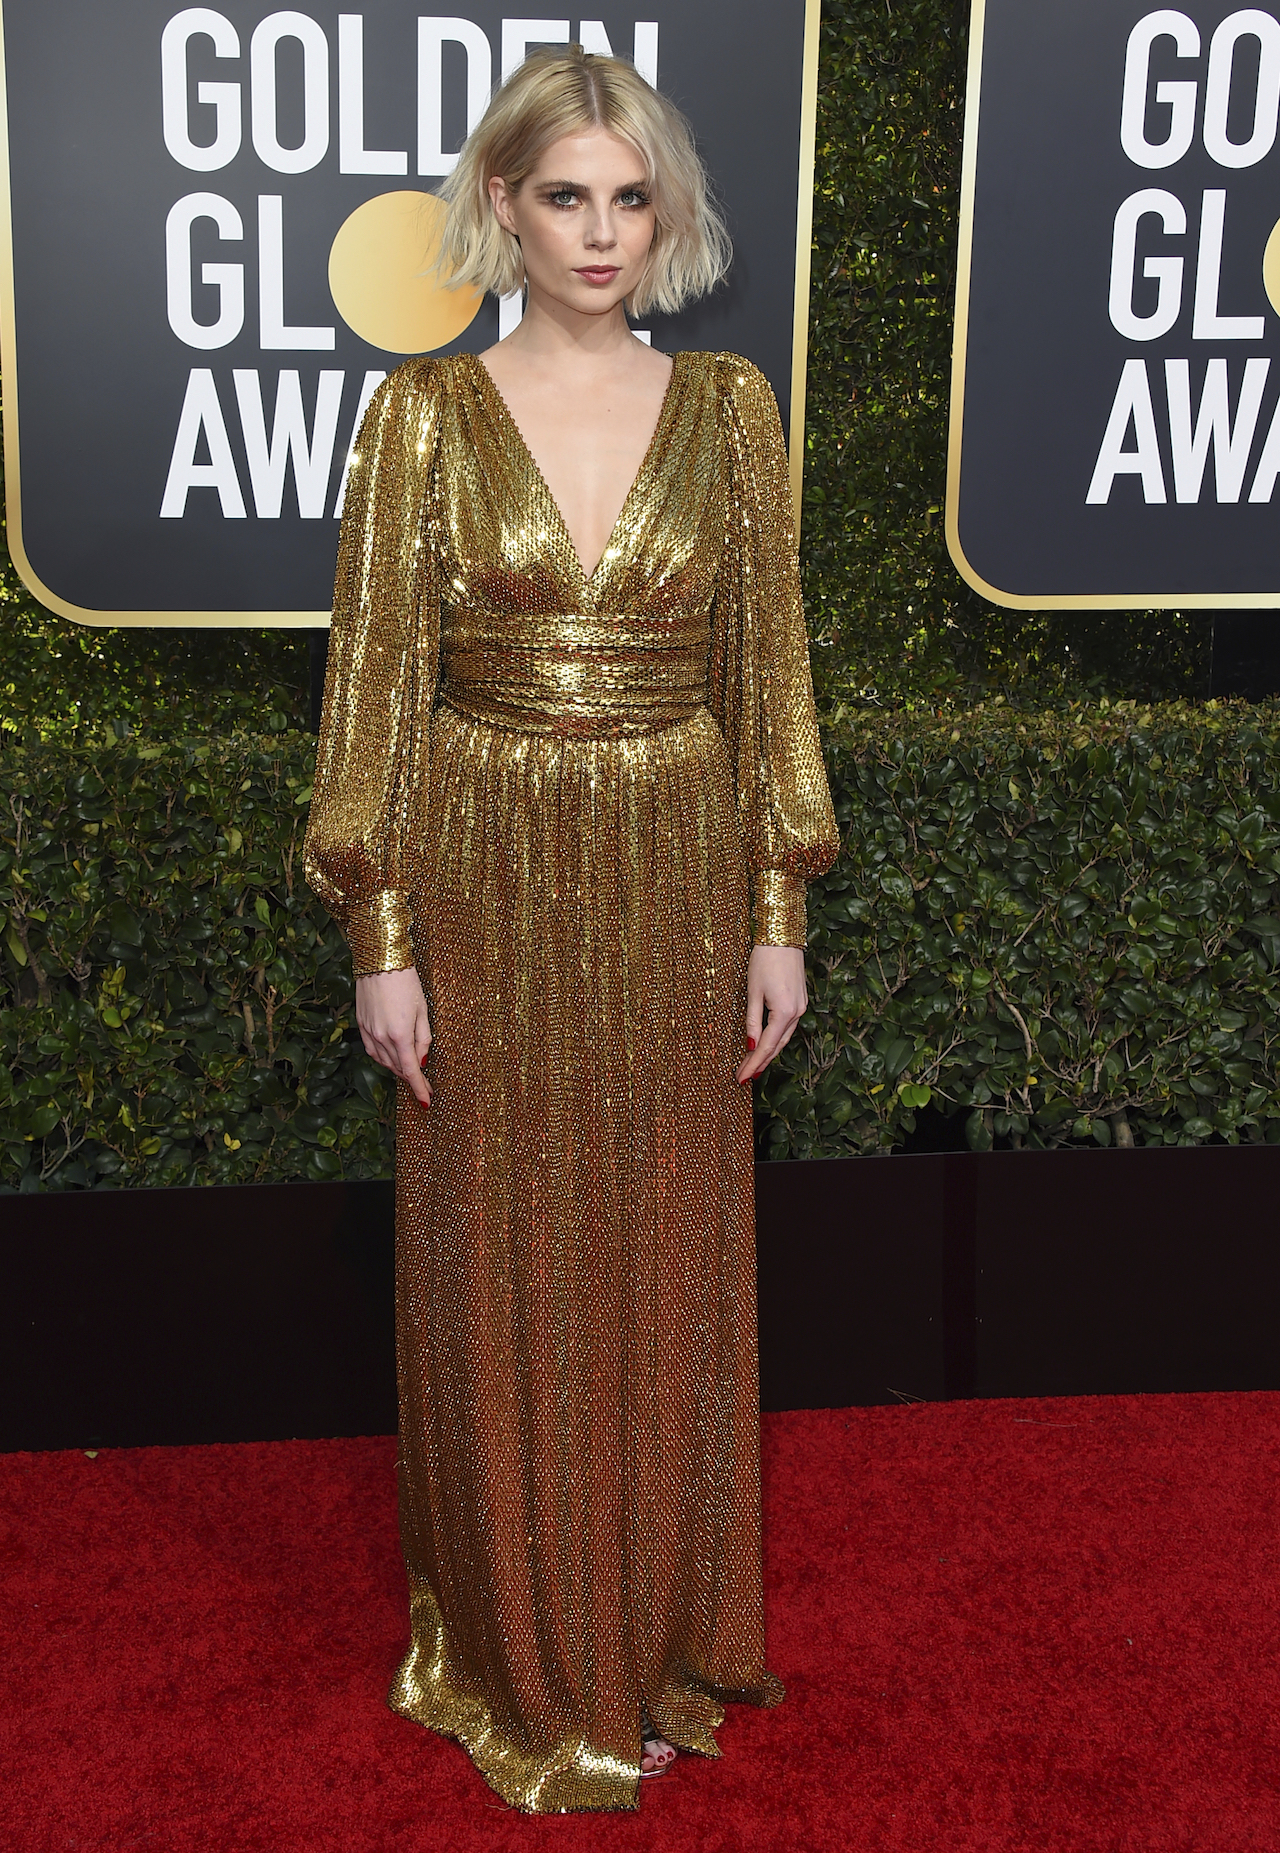 <div class='meta'><div class='origin-logo' data-origin='AP'></div><span class='caption-text' data-credit='Jordan Strauss/Invision/AP'>Lucy Boynton arrives at the 76th annual Golden Globe Awards at the Beverly Hilton Hotel on Sunday, Jan. 6, 2019, in Beverly Hills, Calif.</span></div>